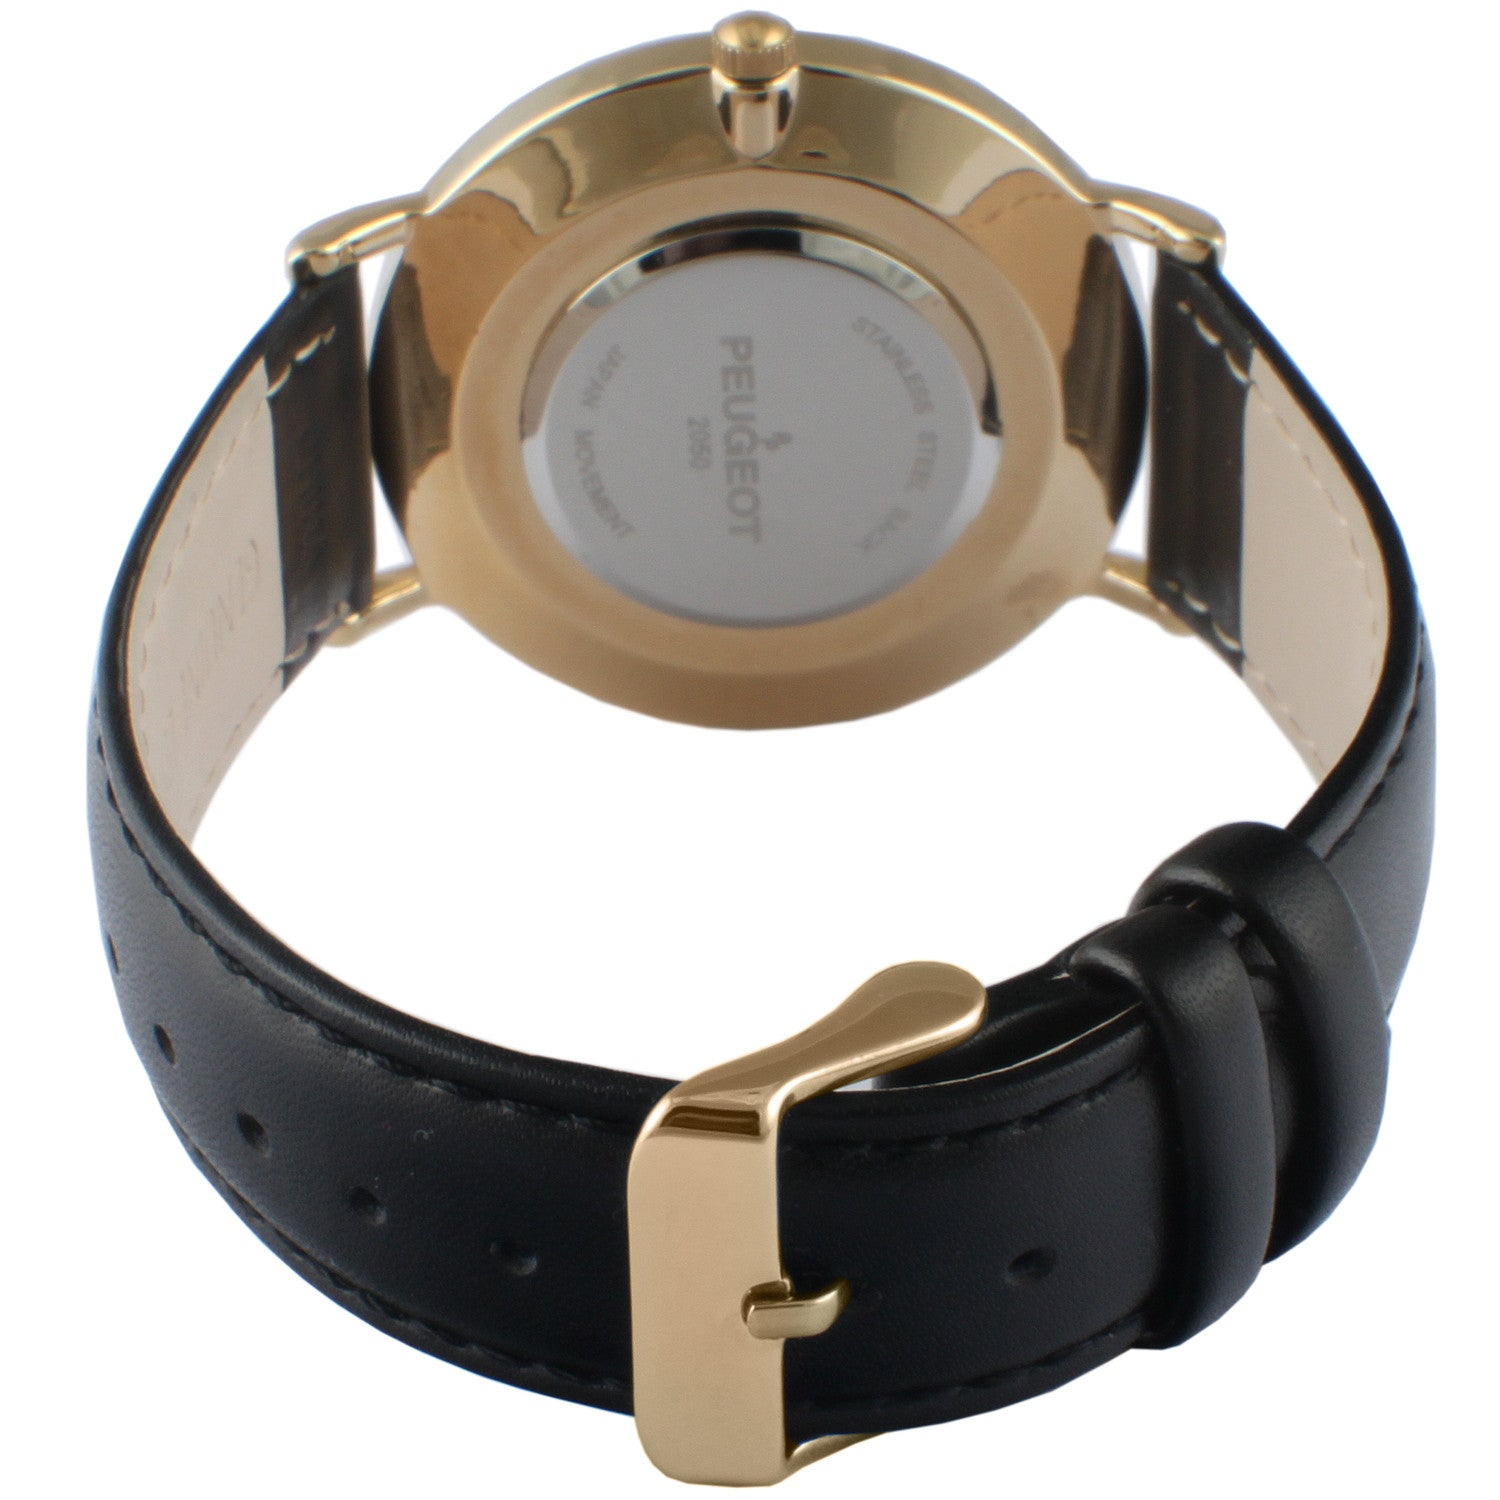 Slim Round Leather Watch - Black